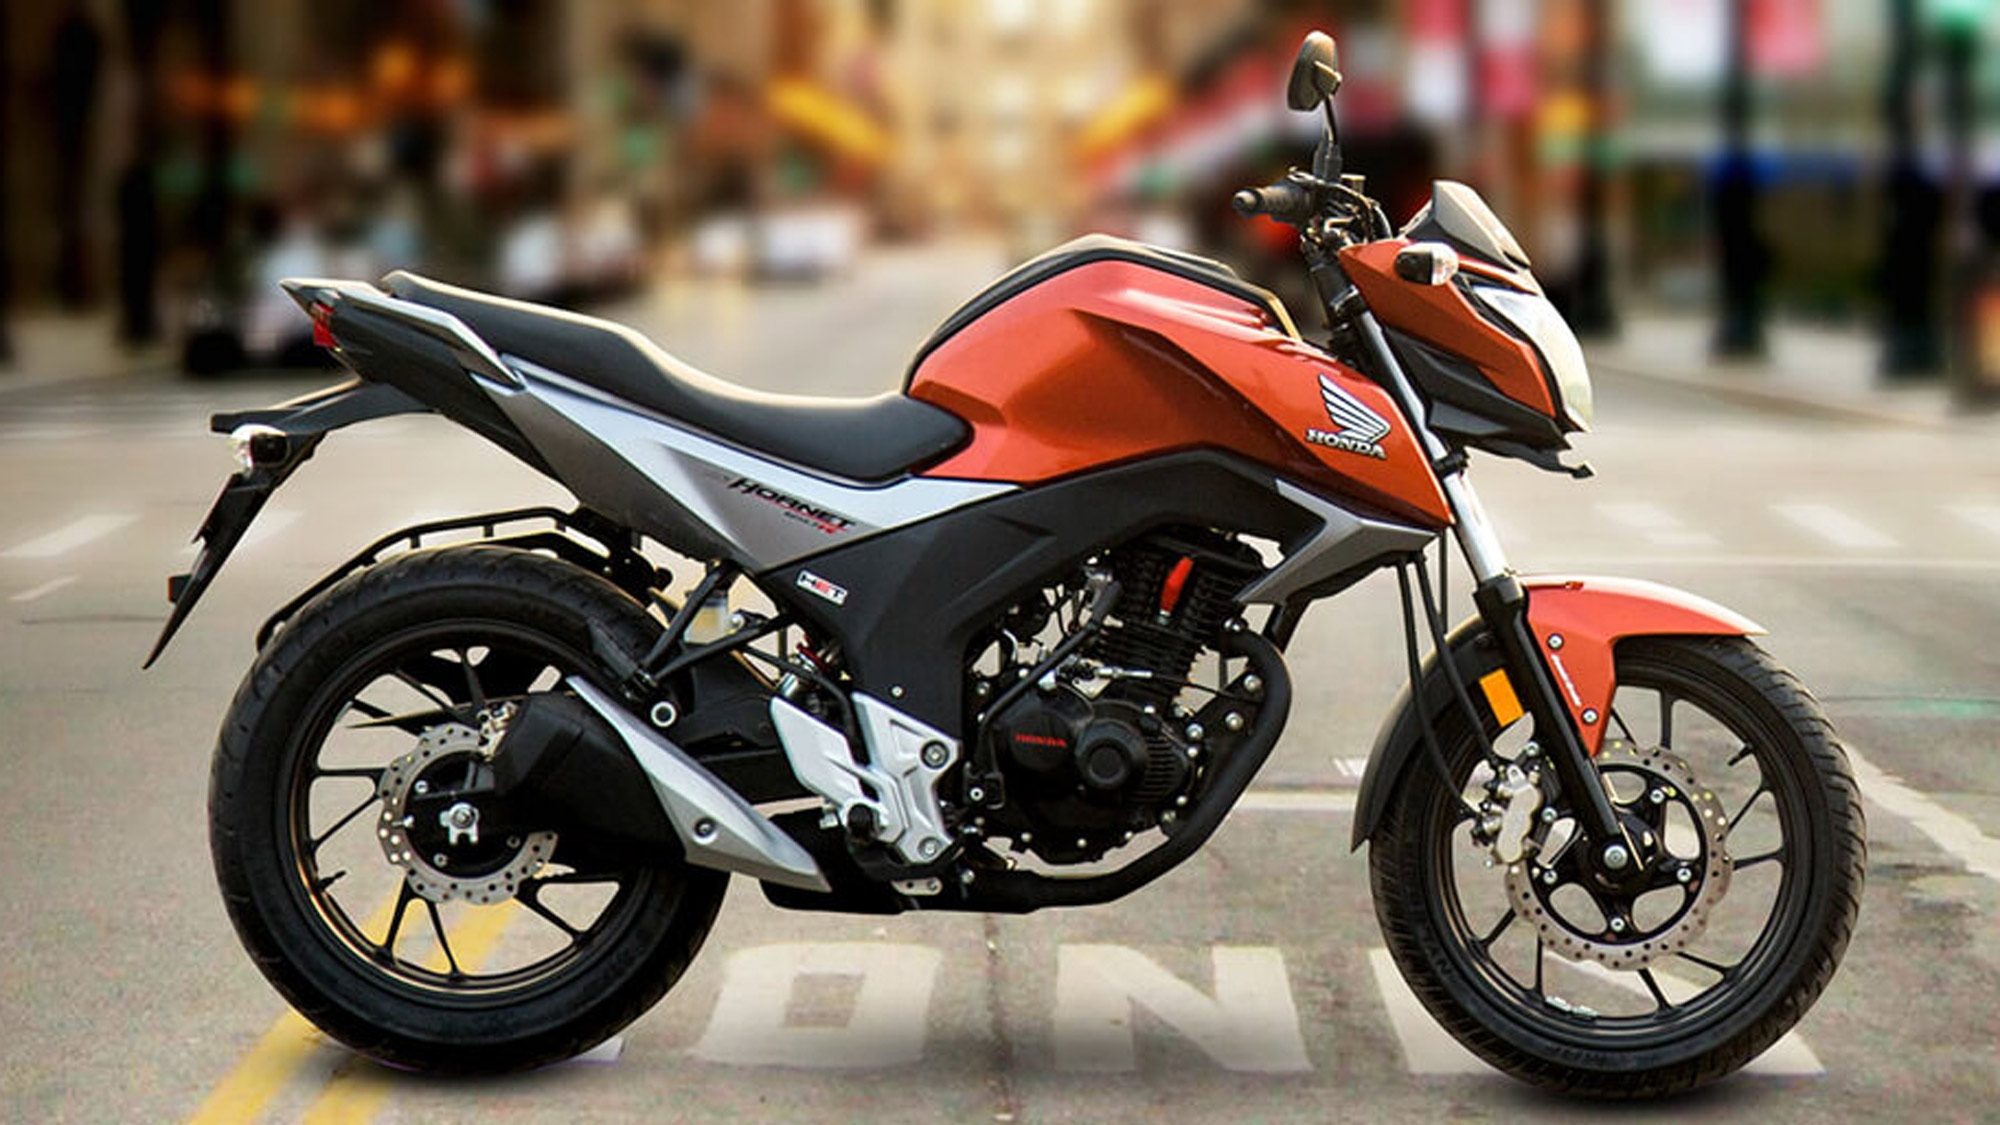 Honda Cb Hornet 160r Launched In India At Rs 79 900 The